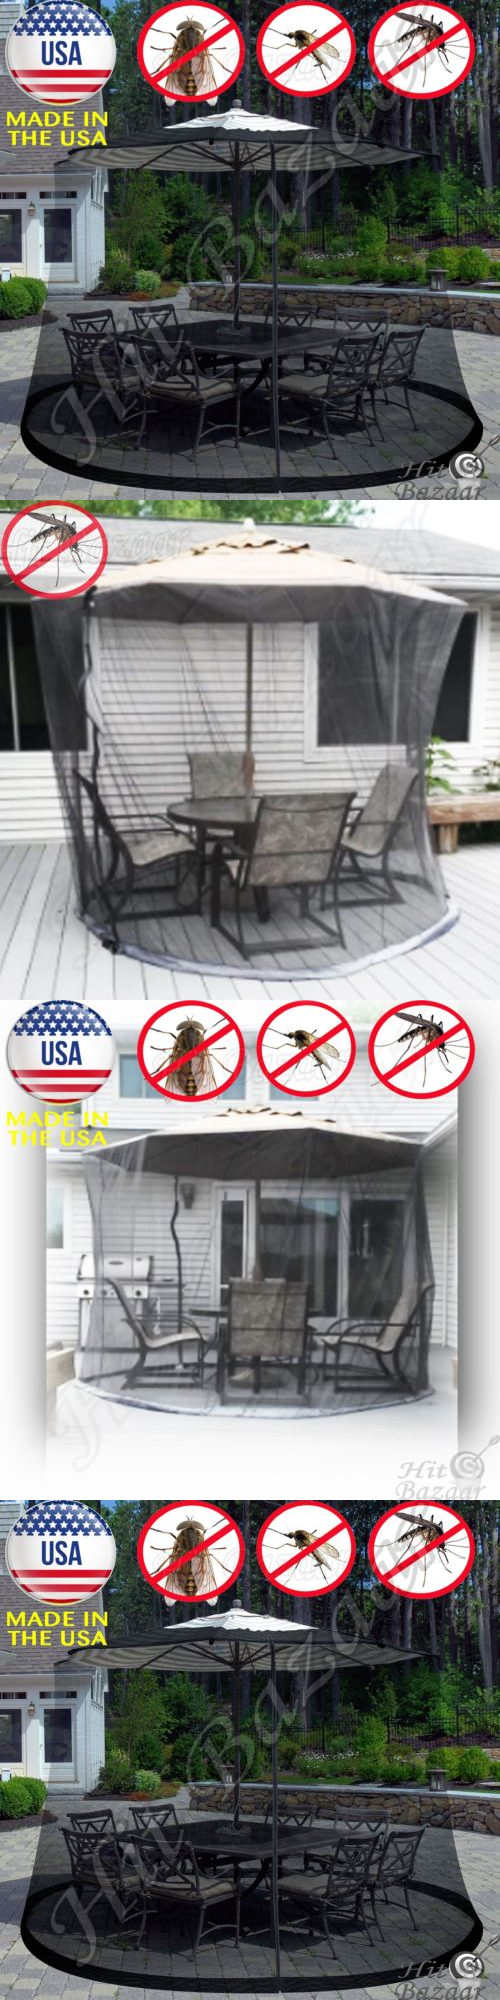 Privacy Screens Windscreens 180991: Mosquito Net Patio Umbrella Screen  Cover Outdoor 9 Ft Insect Control